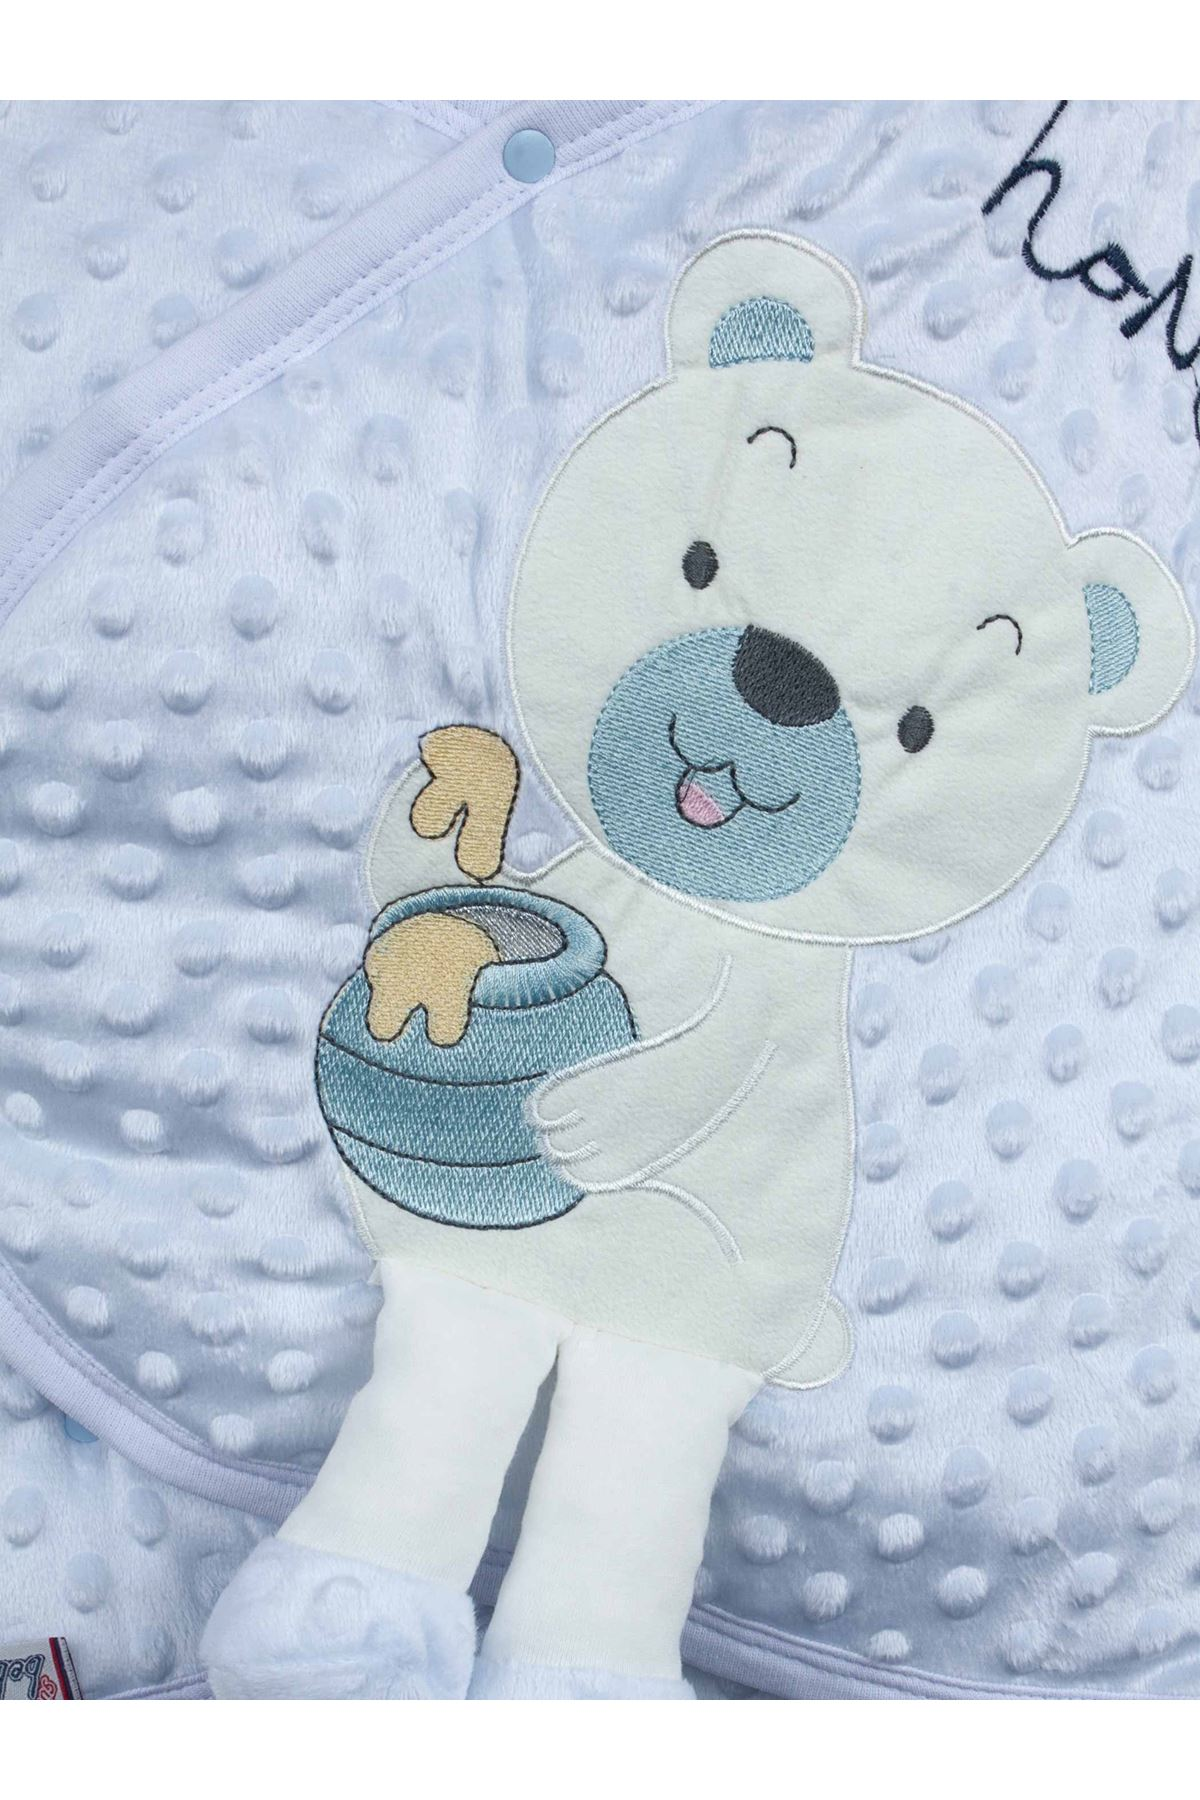 Baby Girls Boys Bear Toy Comfortable Sleeping Bag Swaddle with Bottom Opening Chickpea Embossed Soft Envelope Bed Cute Babies